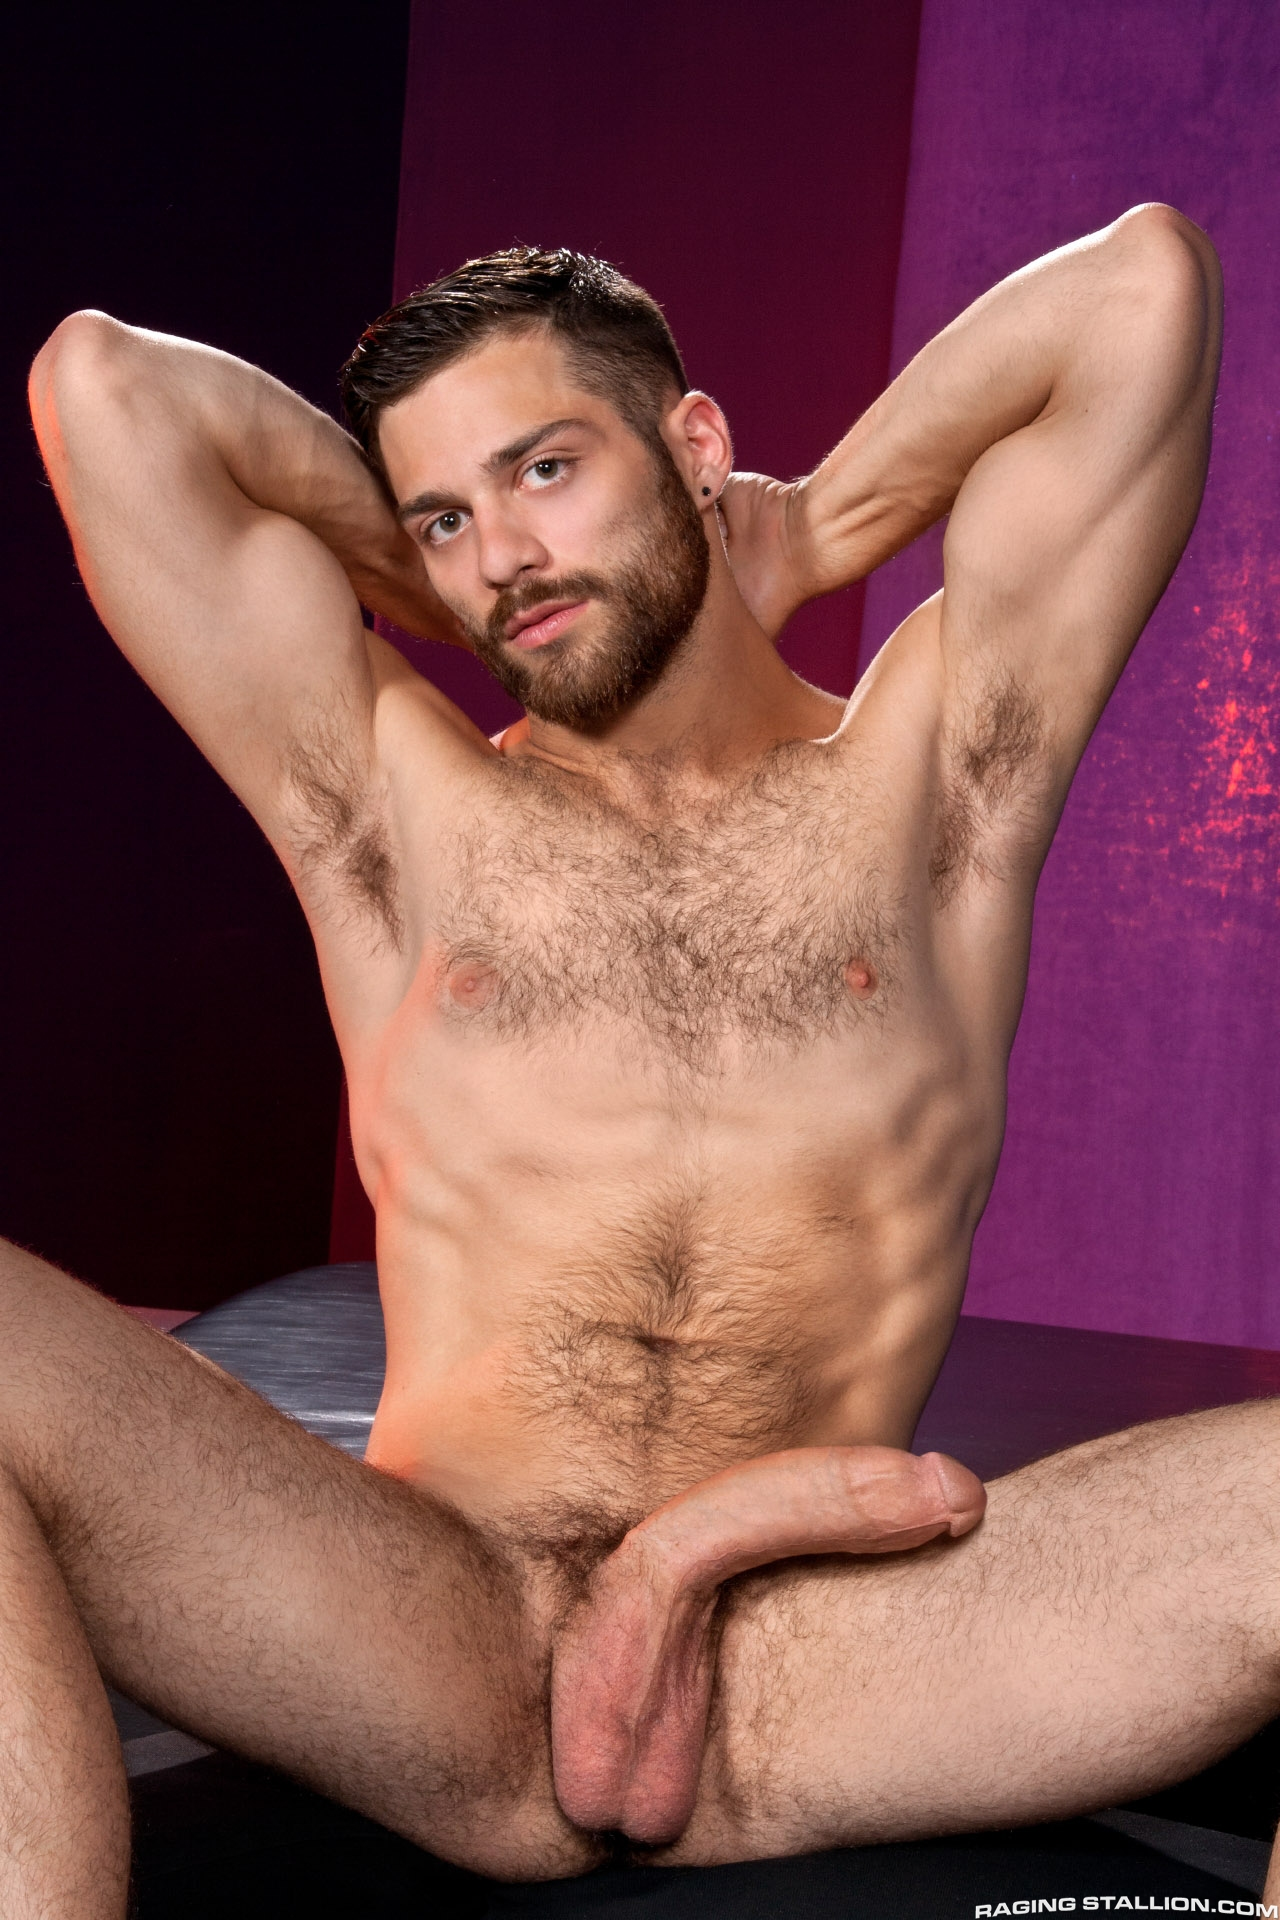 Tommy Defendi gay hot daddy dude men porn